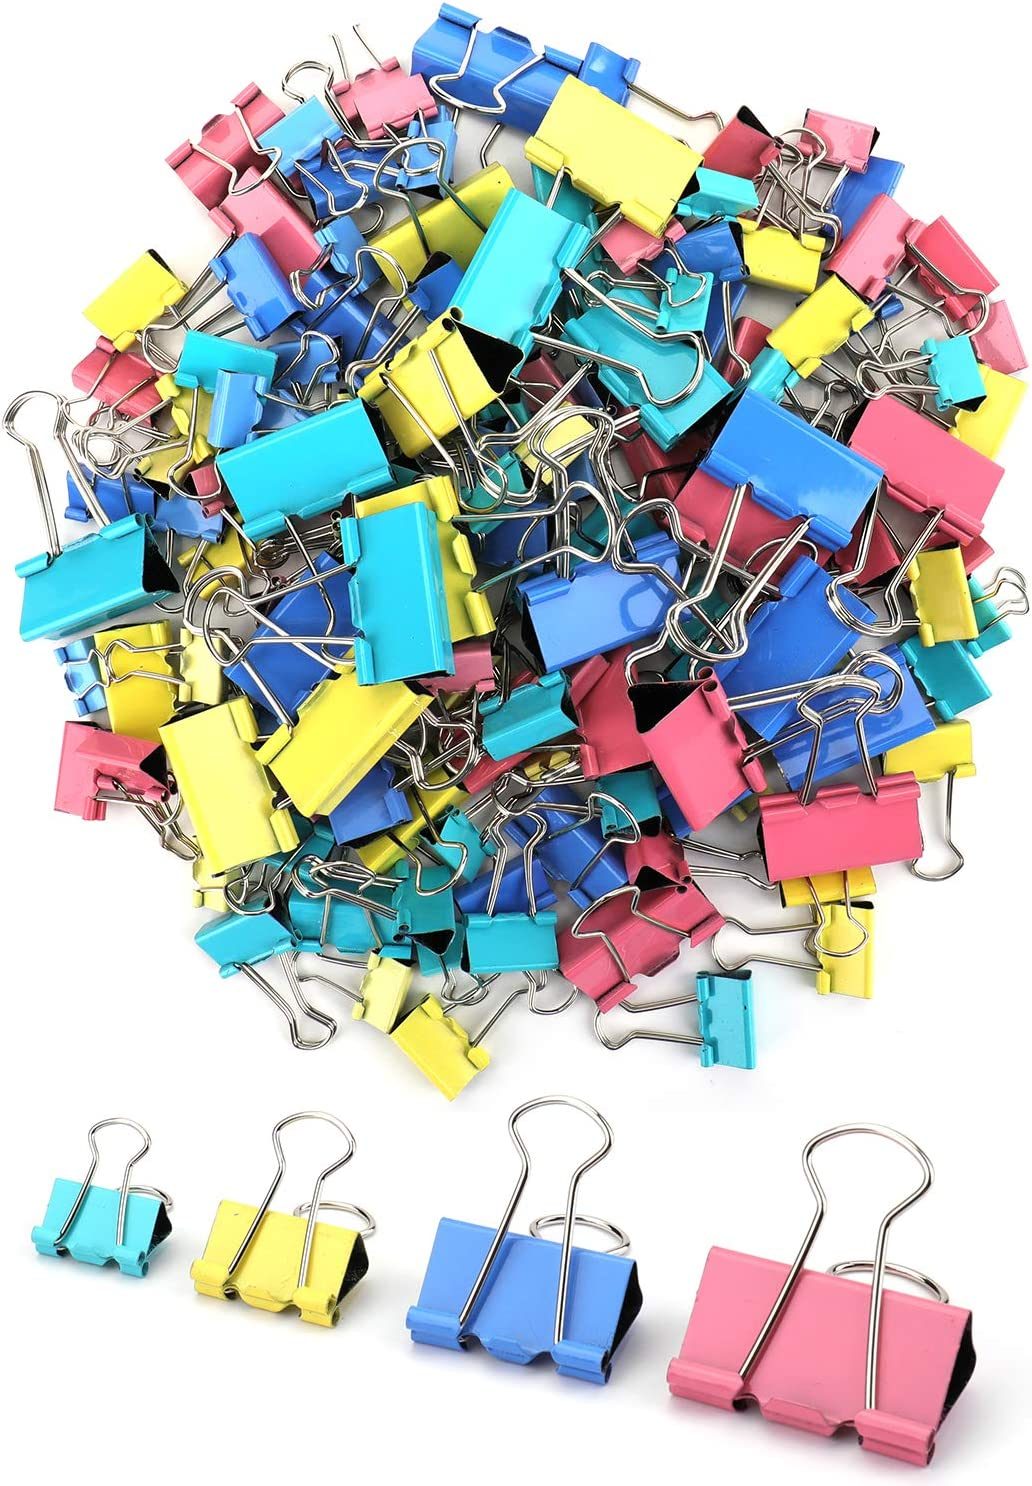 Nicunom 272 Pcs Binder Clips Paper Clamps Assorted 4 Sizes, Assorted Color Paper Binder Clips Metal Fold Back Clips for Office, School and Home Supplies